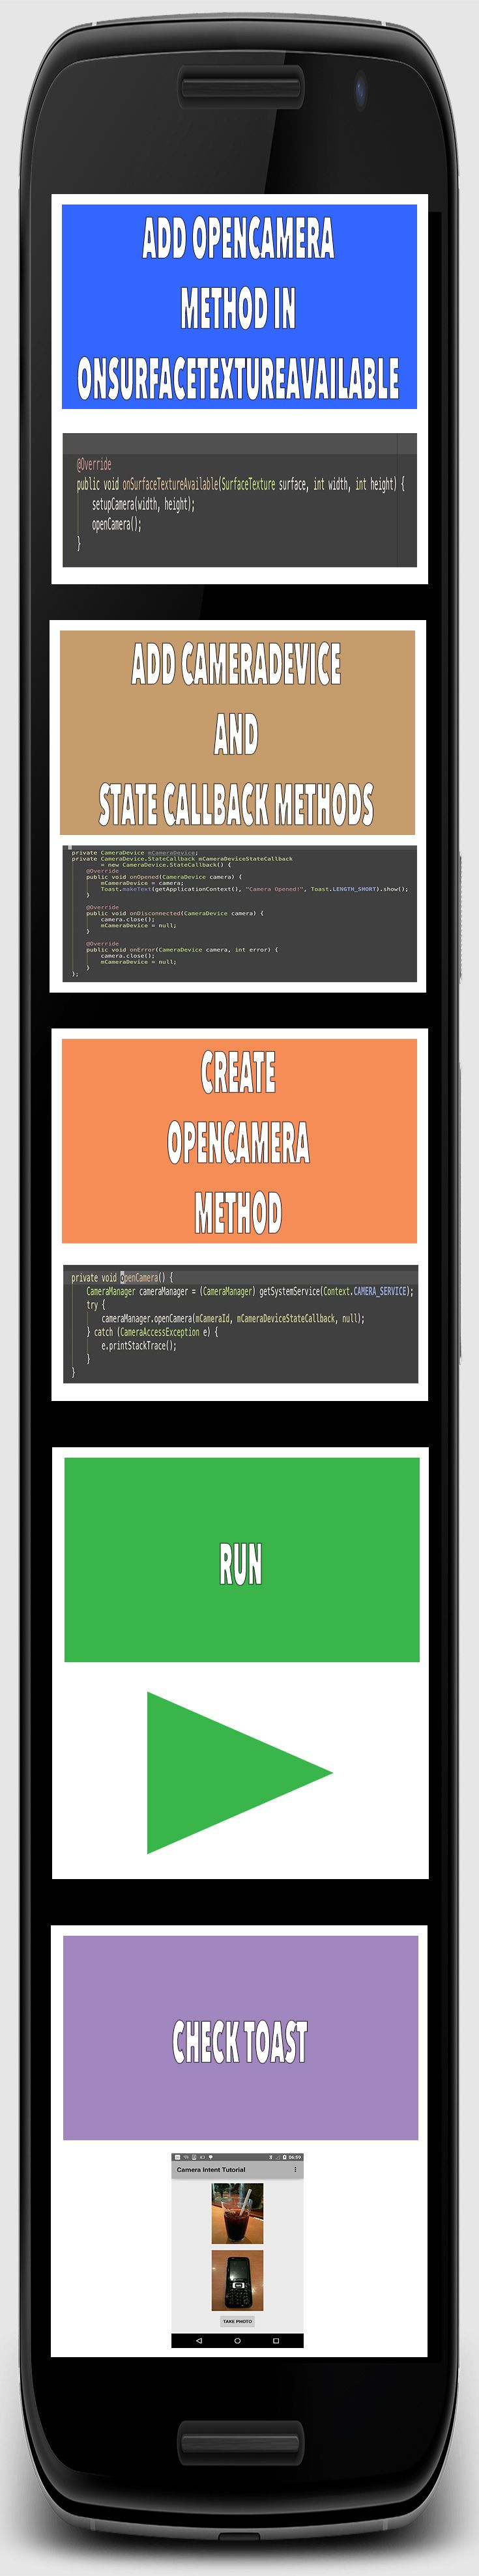 Android Camer2 Api Open Cameradevice Android Programming Android Android Camera